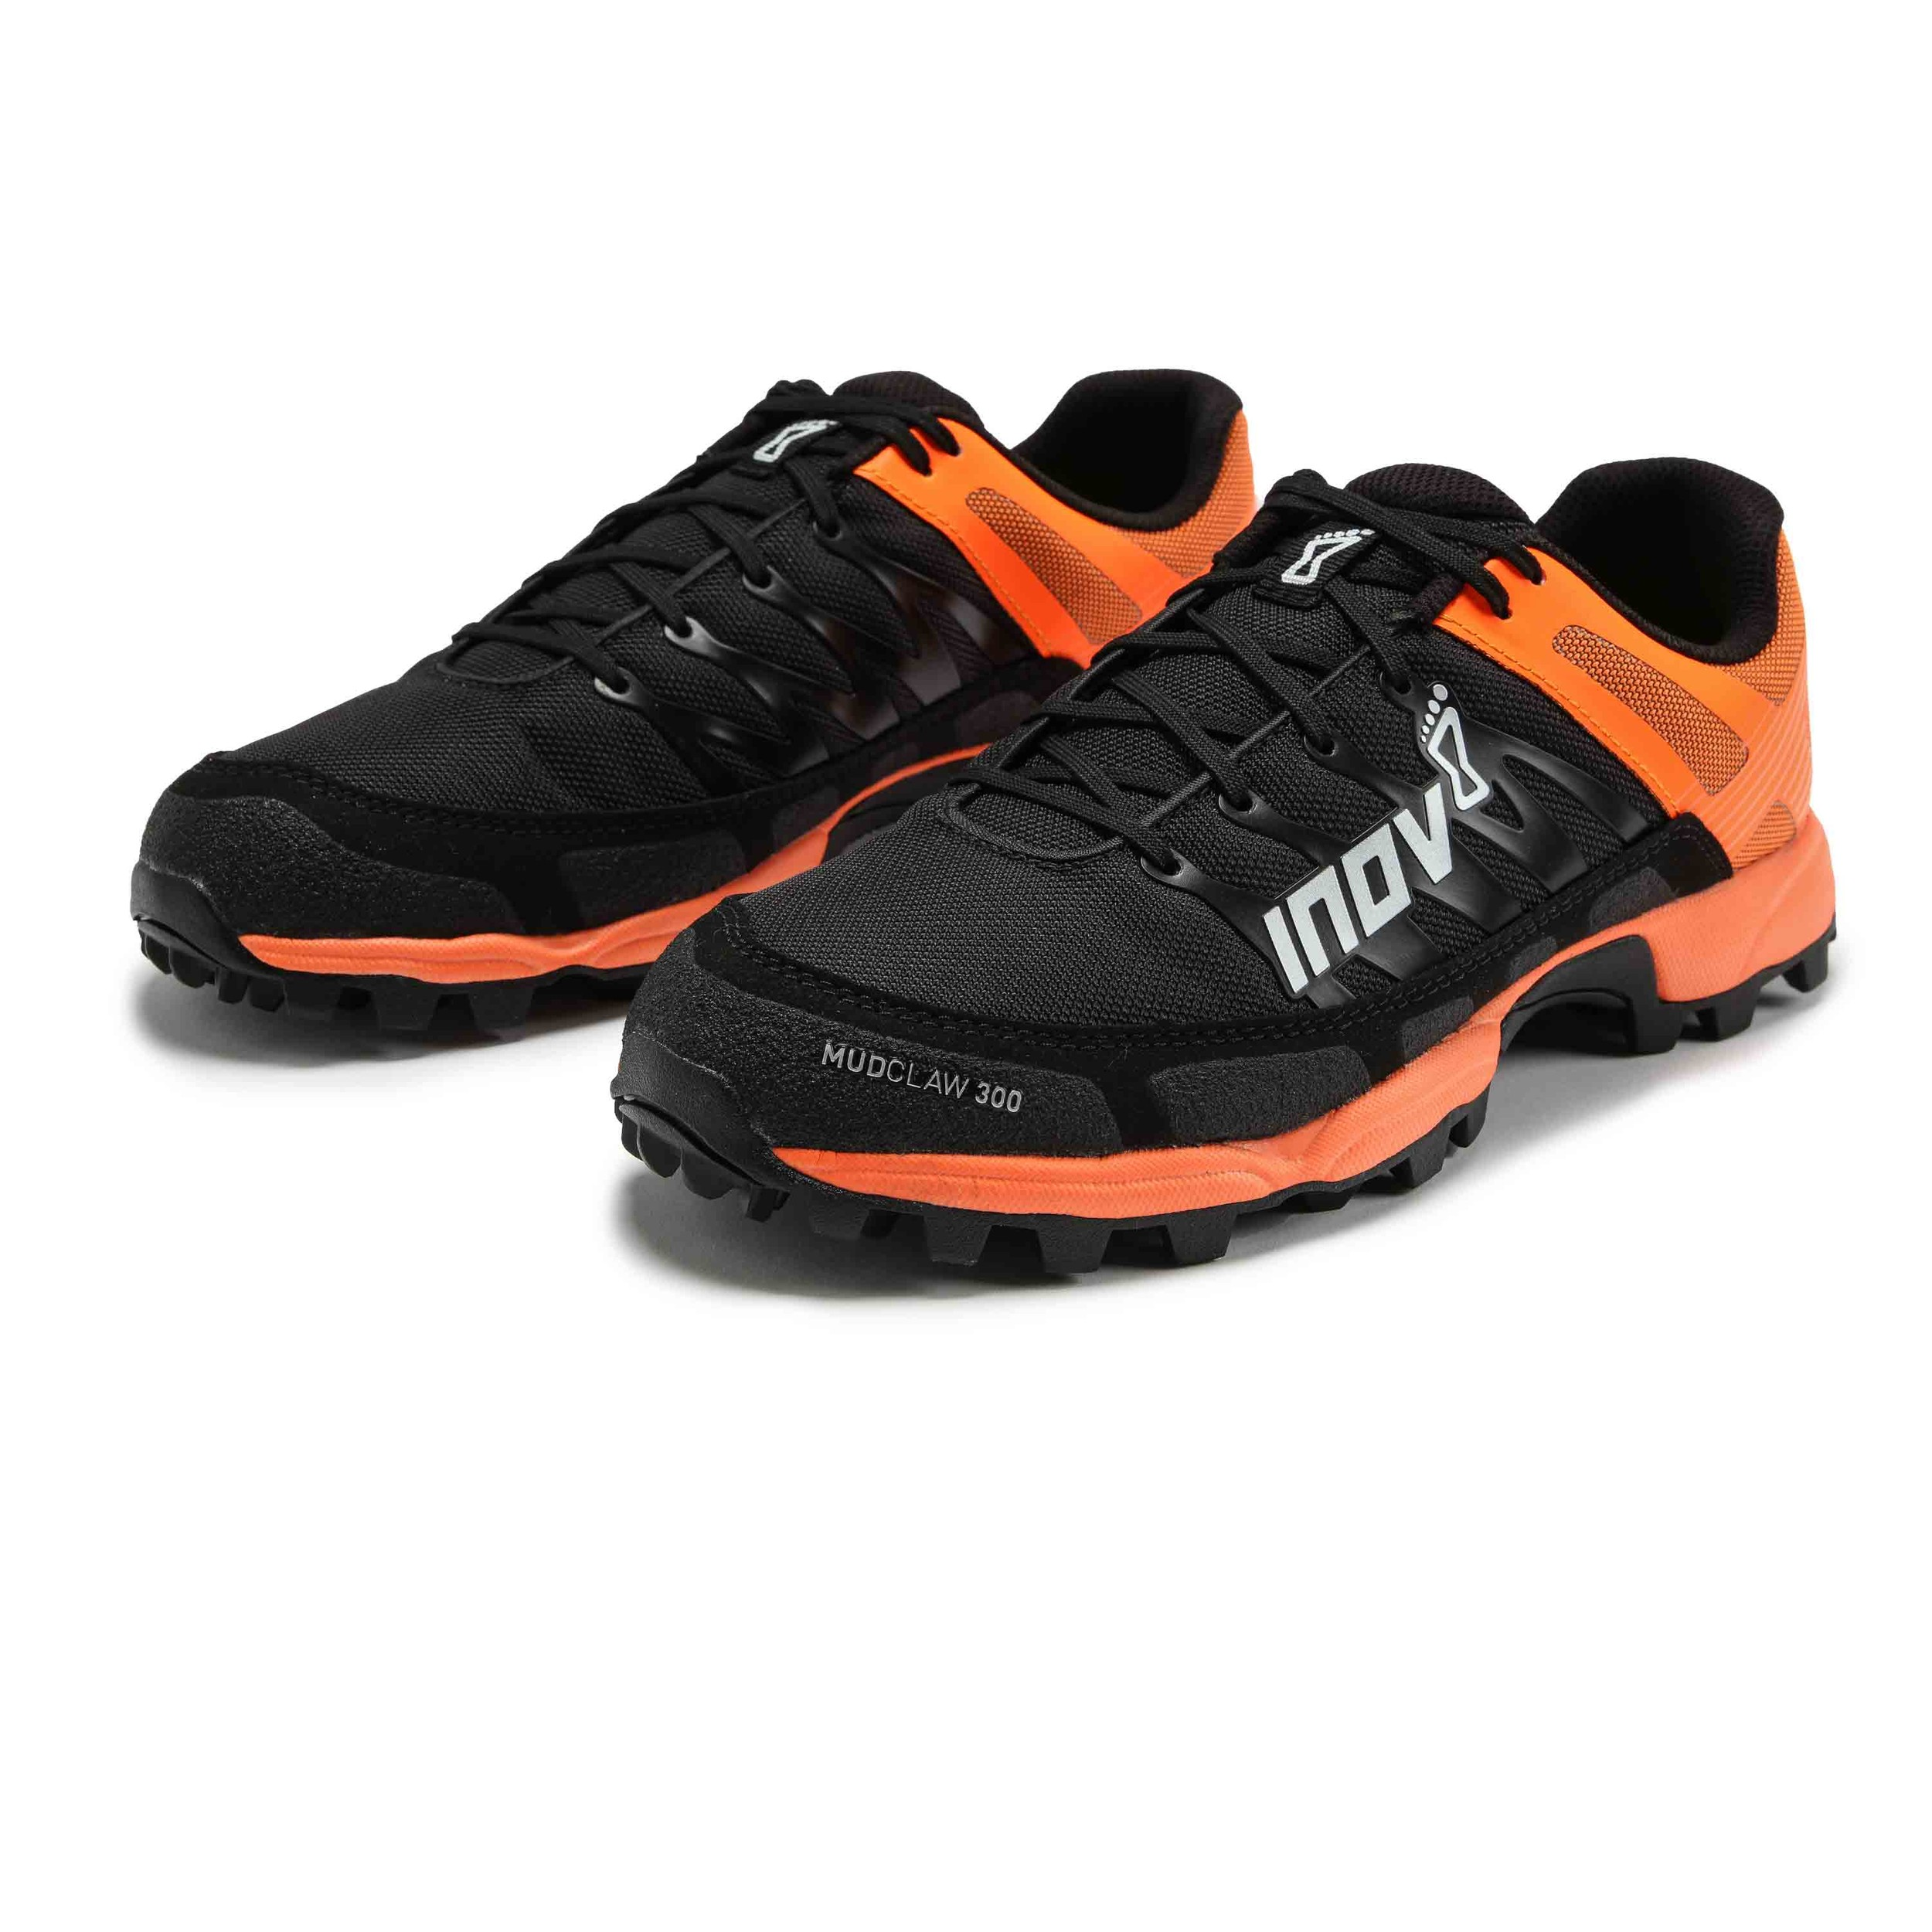 Inov8 Mudclaw 300 Women's Trail Running Shoes - AW20